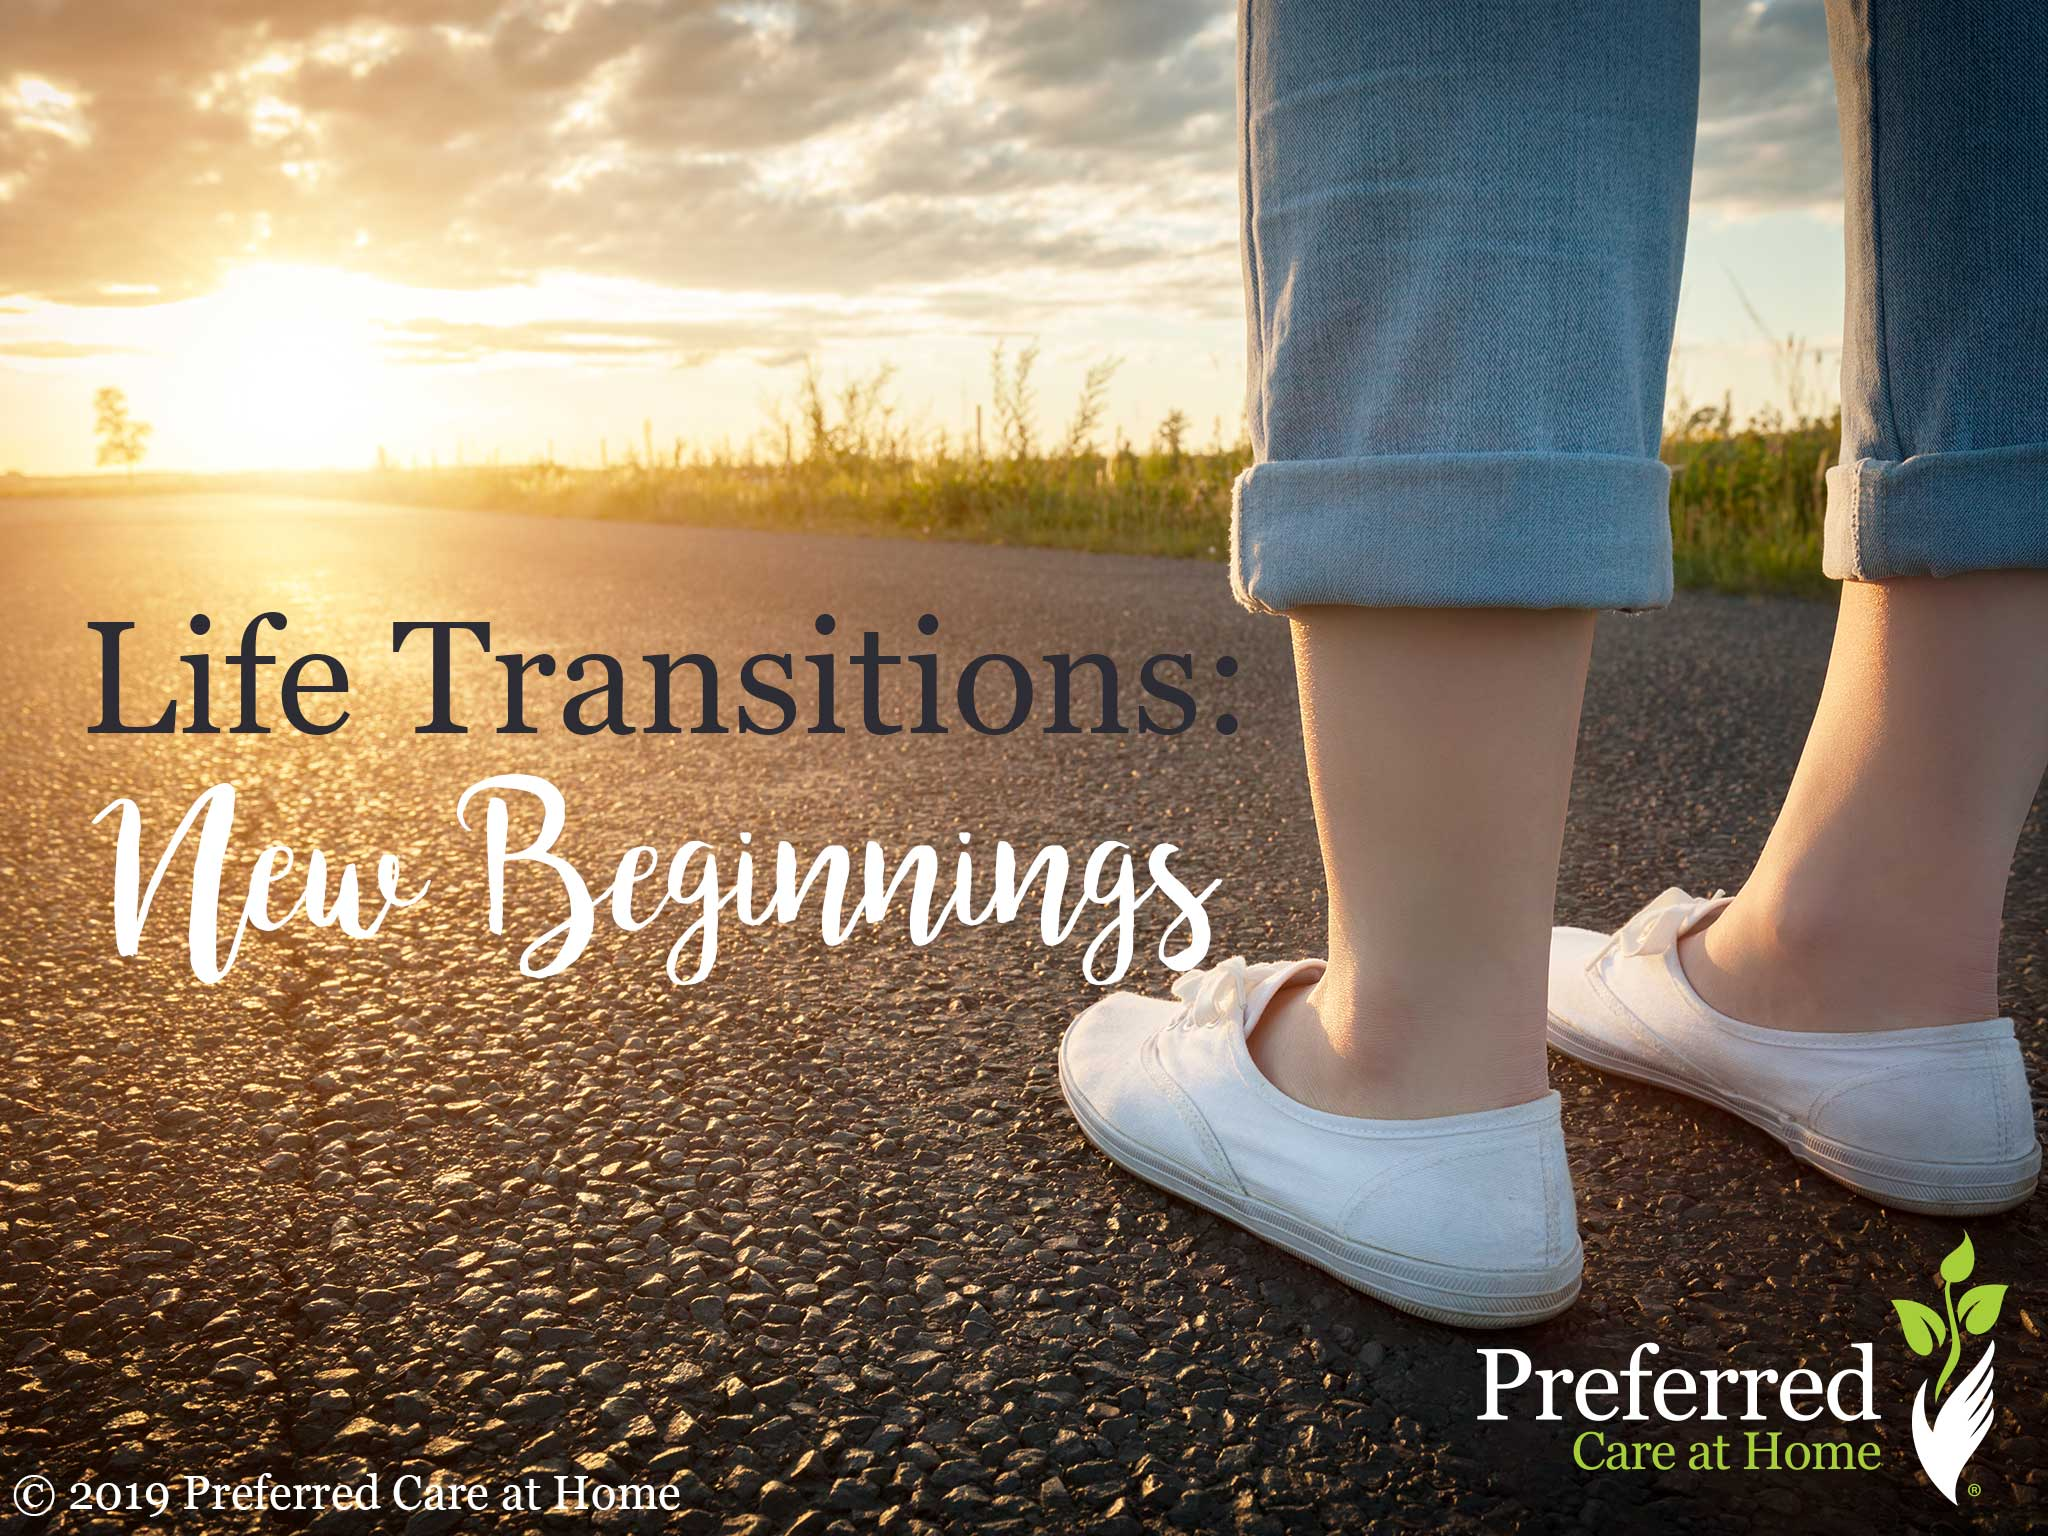 Life Transitions: New Beginnings